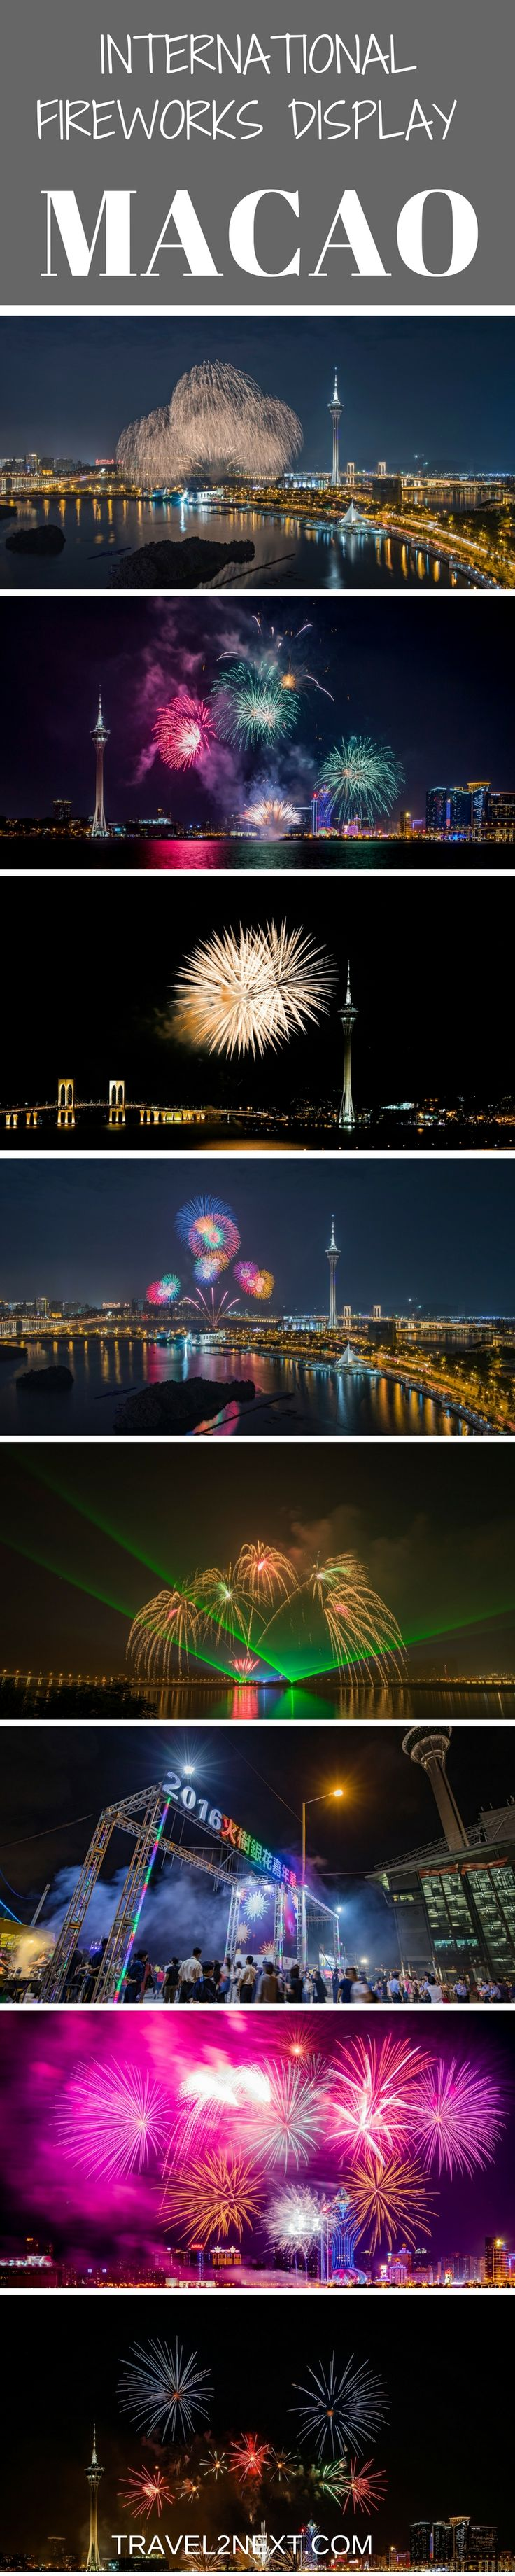 Macao International Fireworks Display Contest. One of the best times of the year to visit Macao is during the Macao International Fireworks Display Contest.